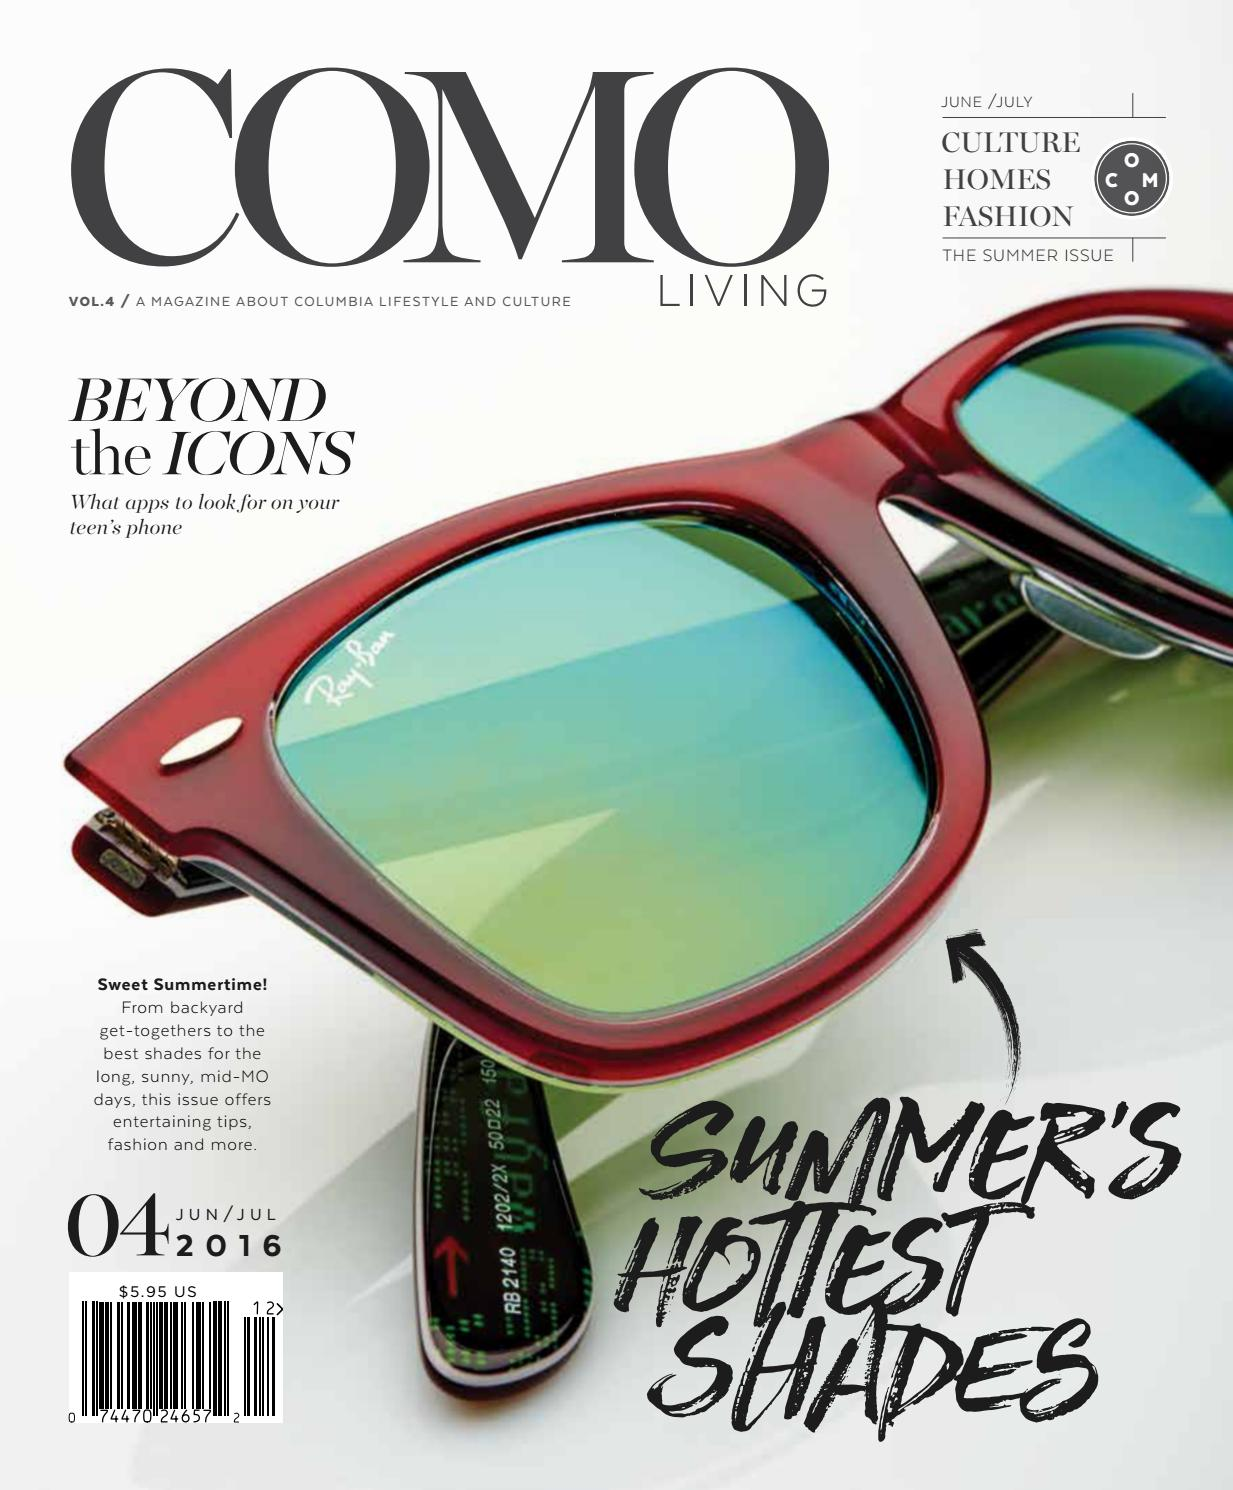 a7c772473e4 COMO Living Magazine - June July 2016 by Business Times Company - issuu